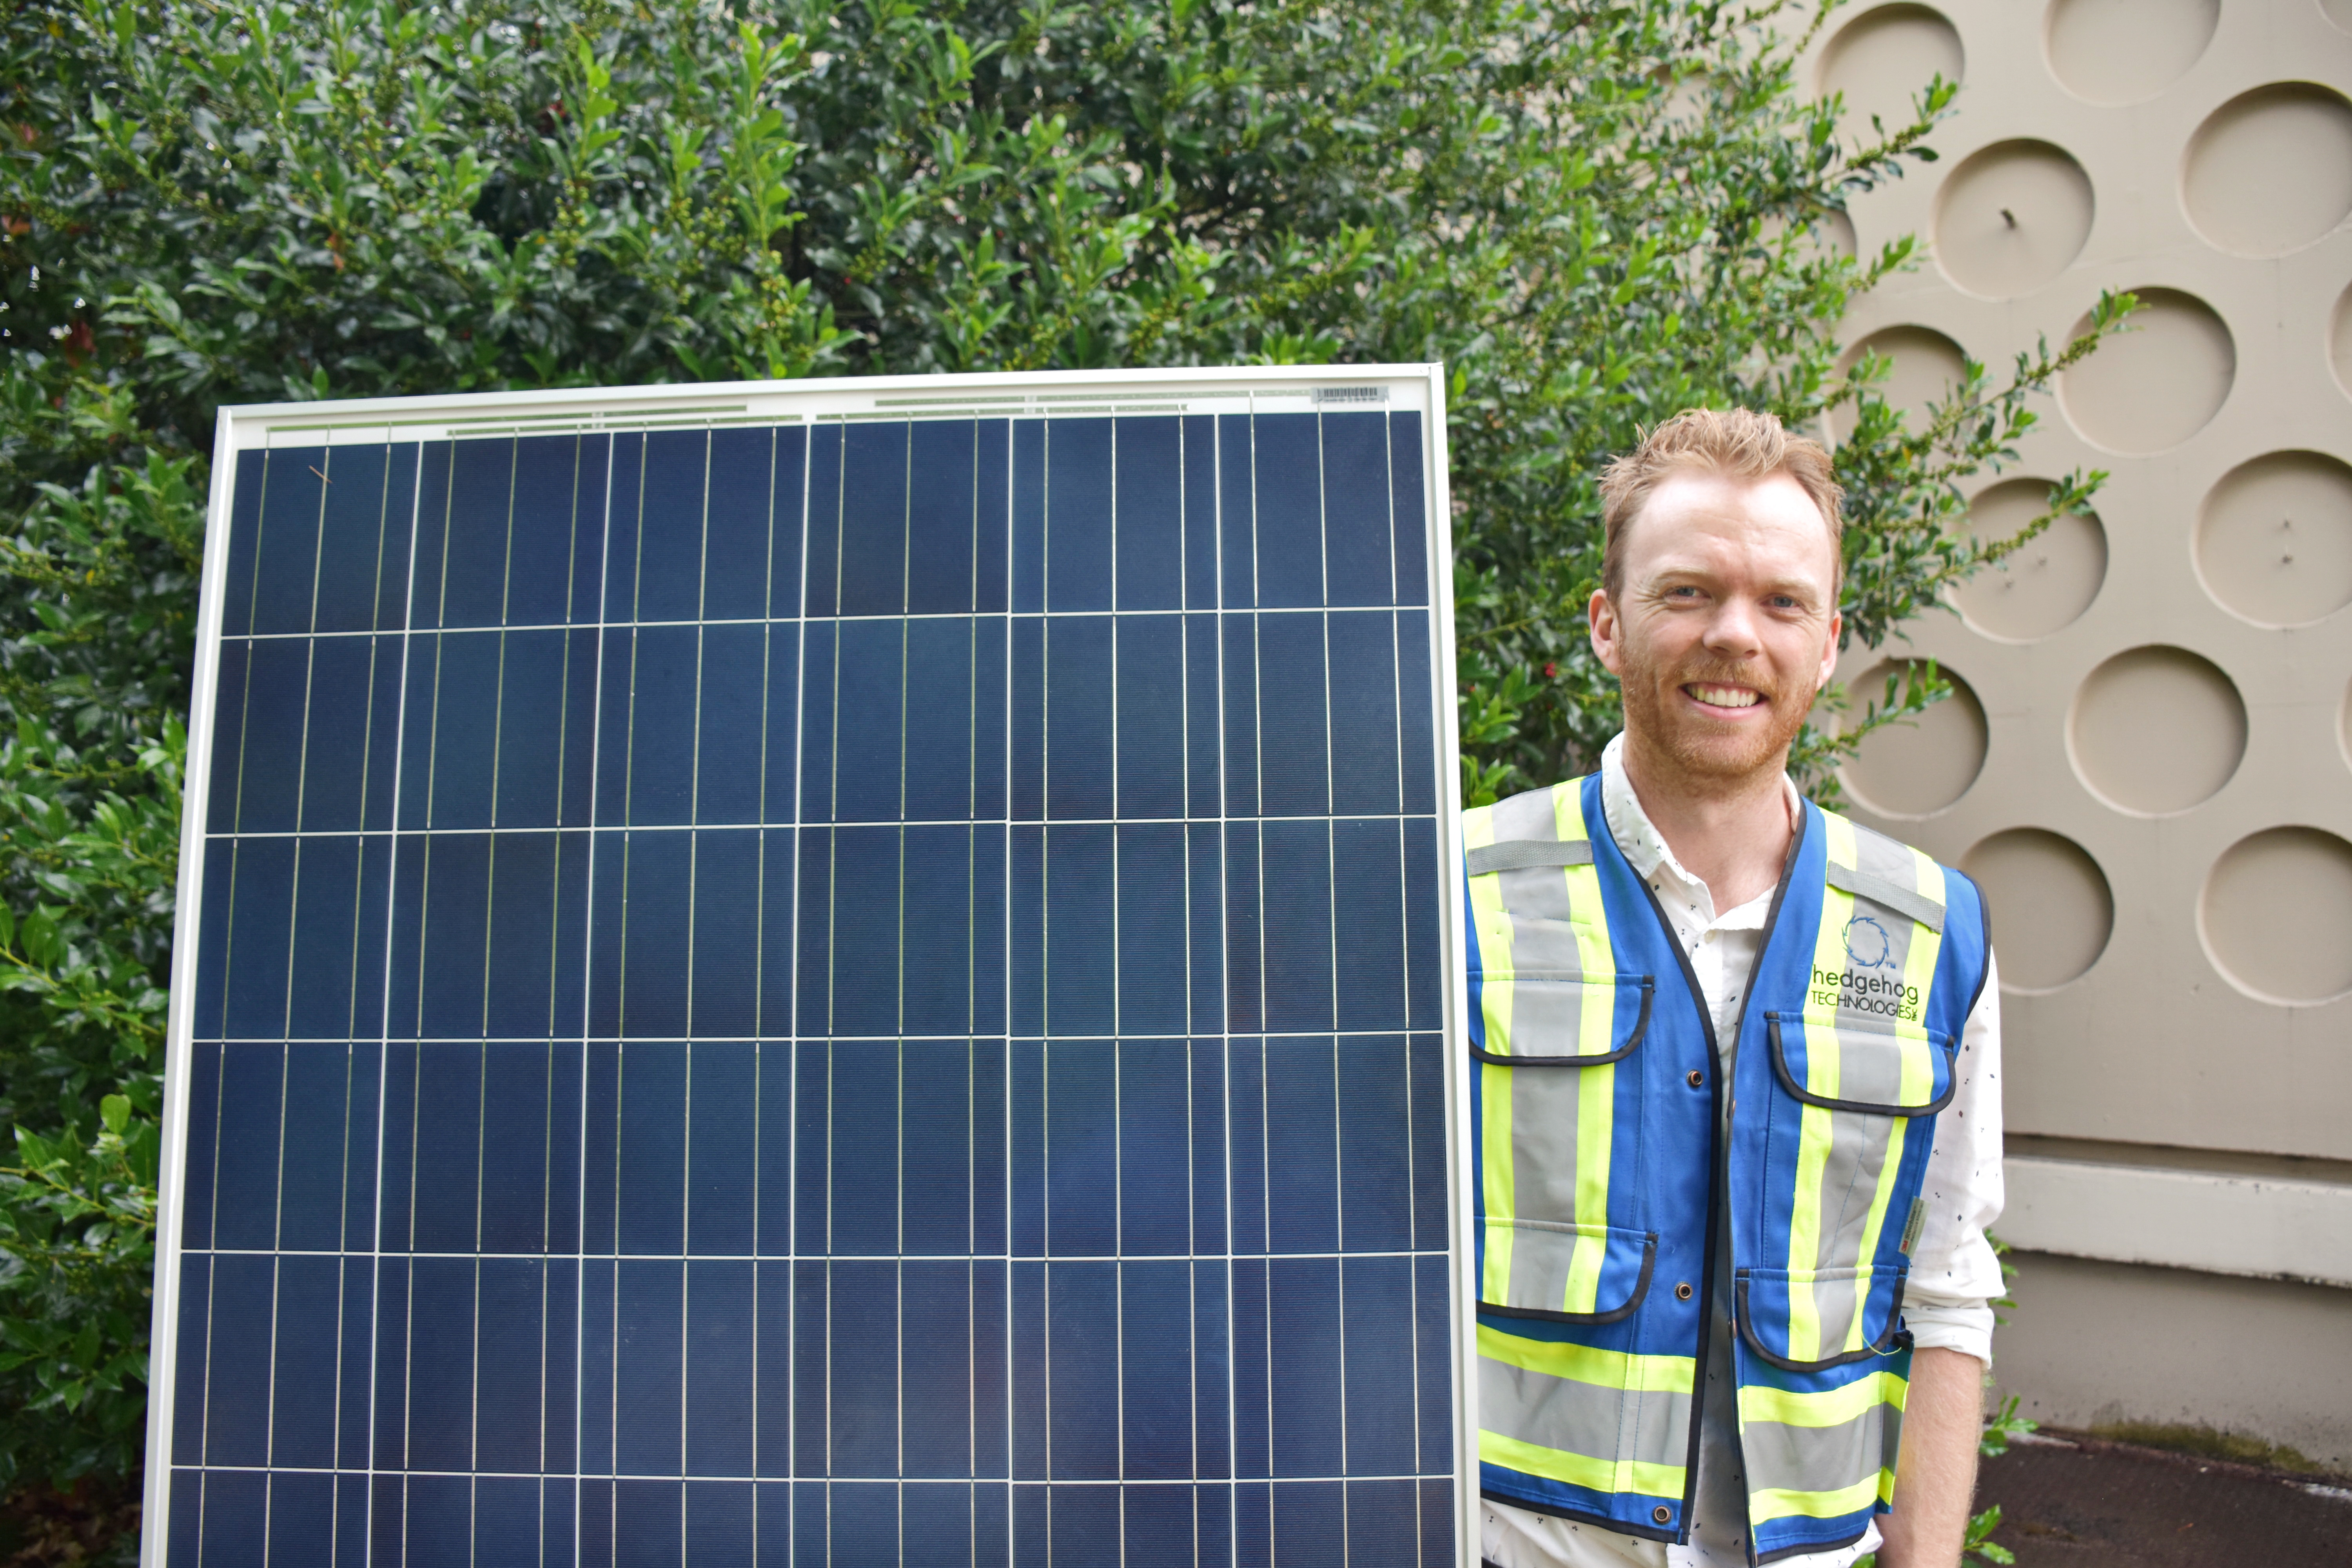 A co-op engineer holding a solar panel